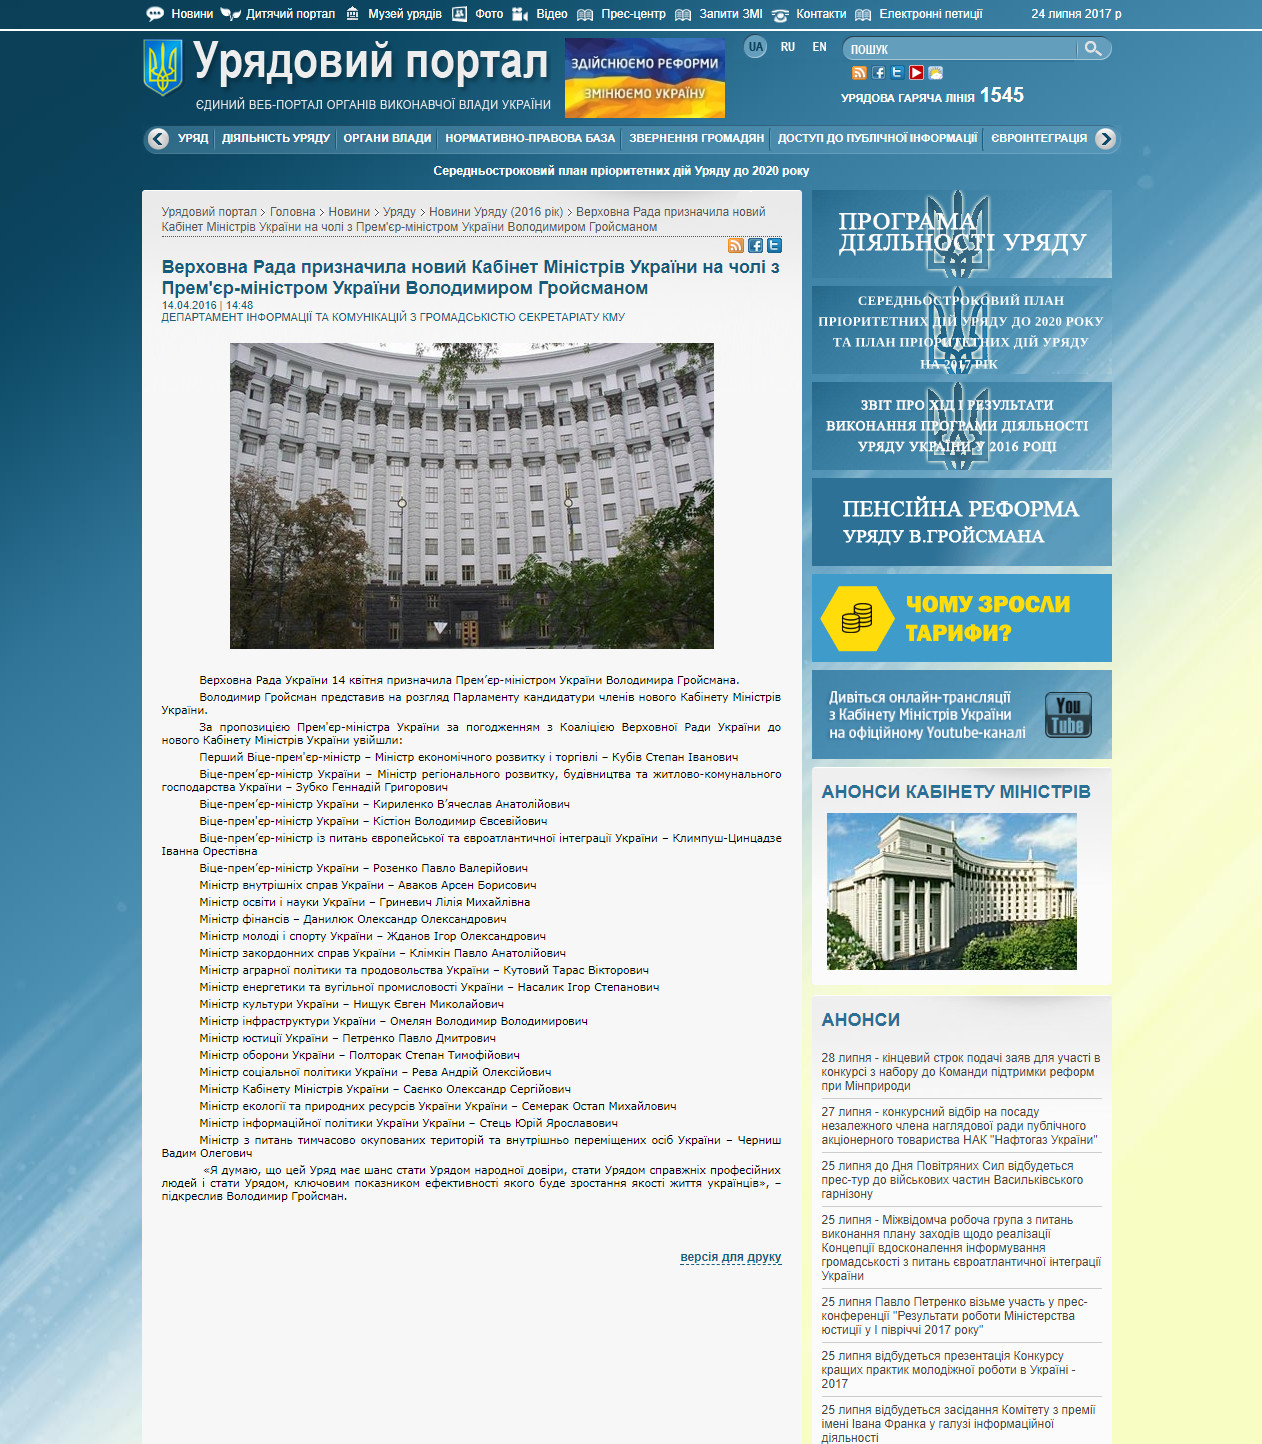 http://www.kmu.gov.ua/control/uk/publish/article?art_id=248958510